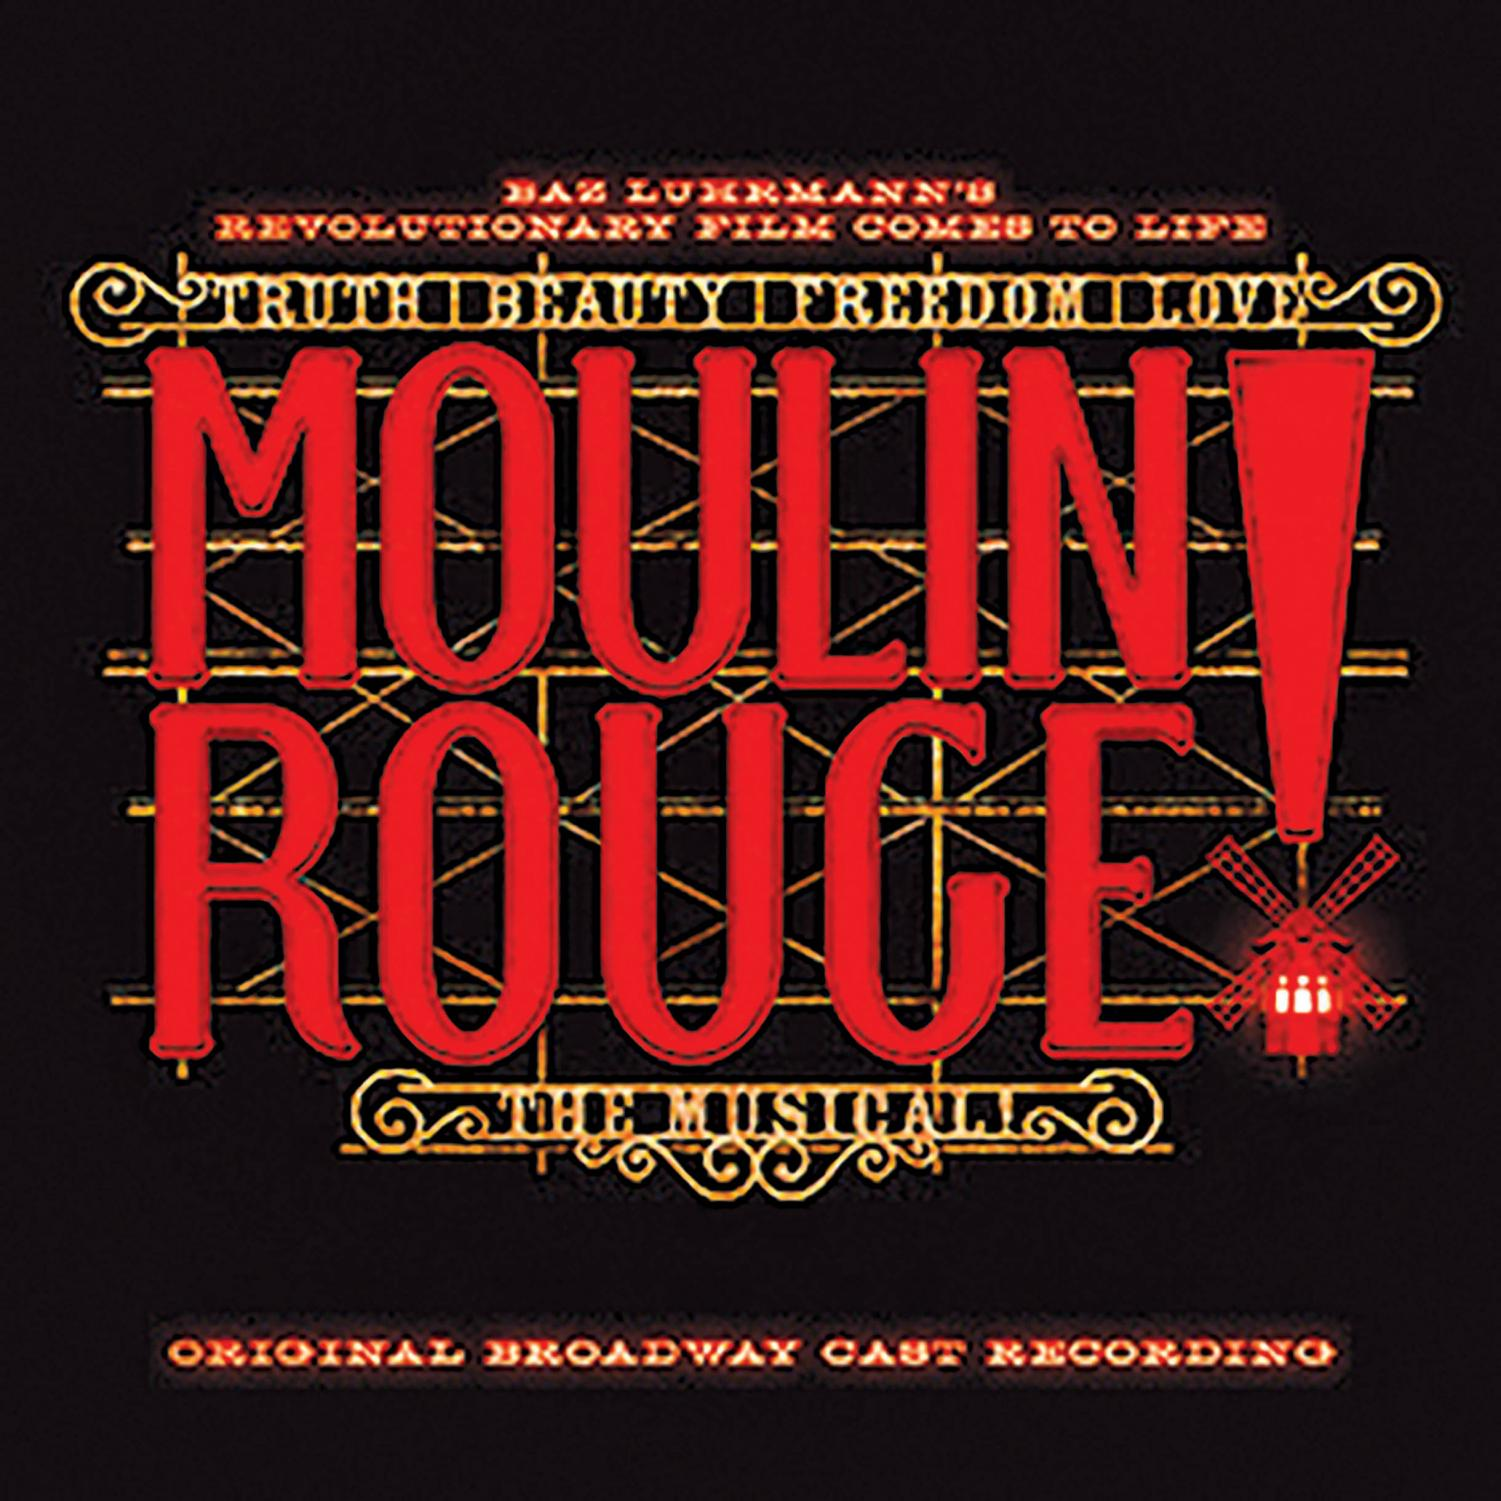 Based on a movie by the same name 'Moulin Rouge!' opened on Broadway this past July to great reviews.